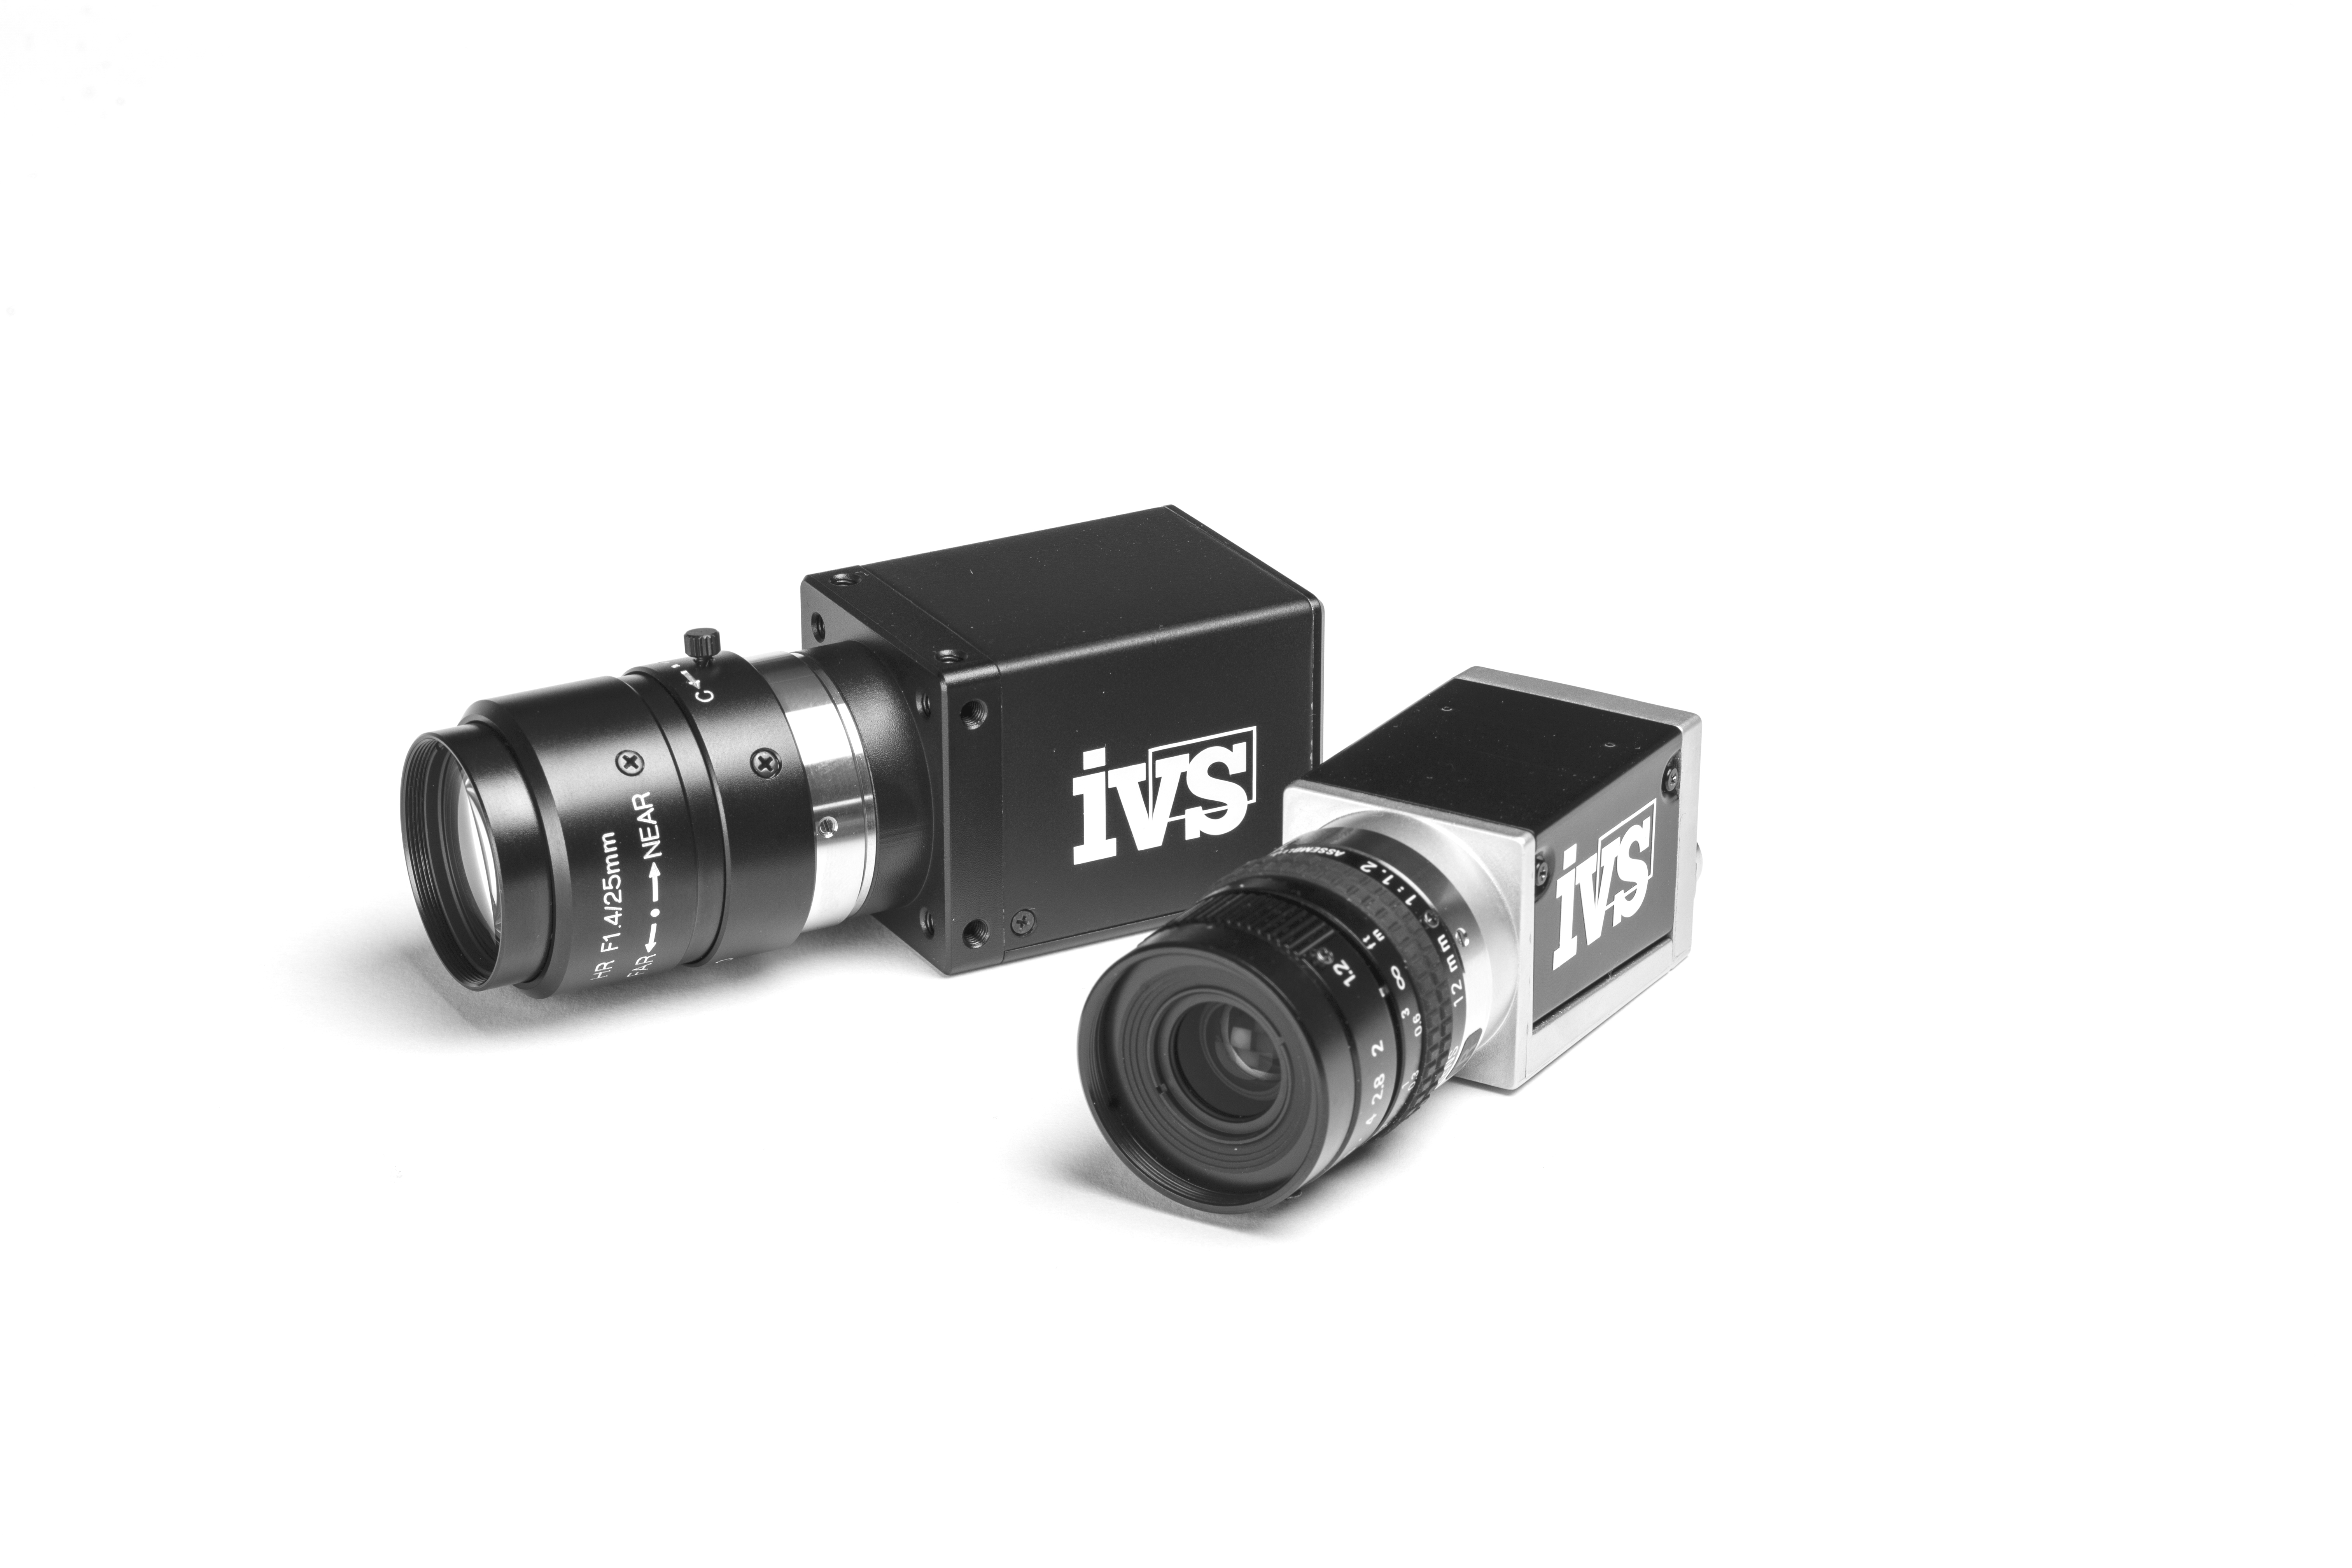 NCG Vision Cameras from IVS